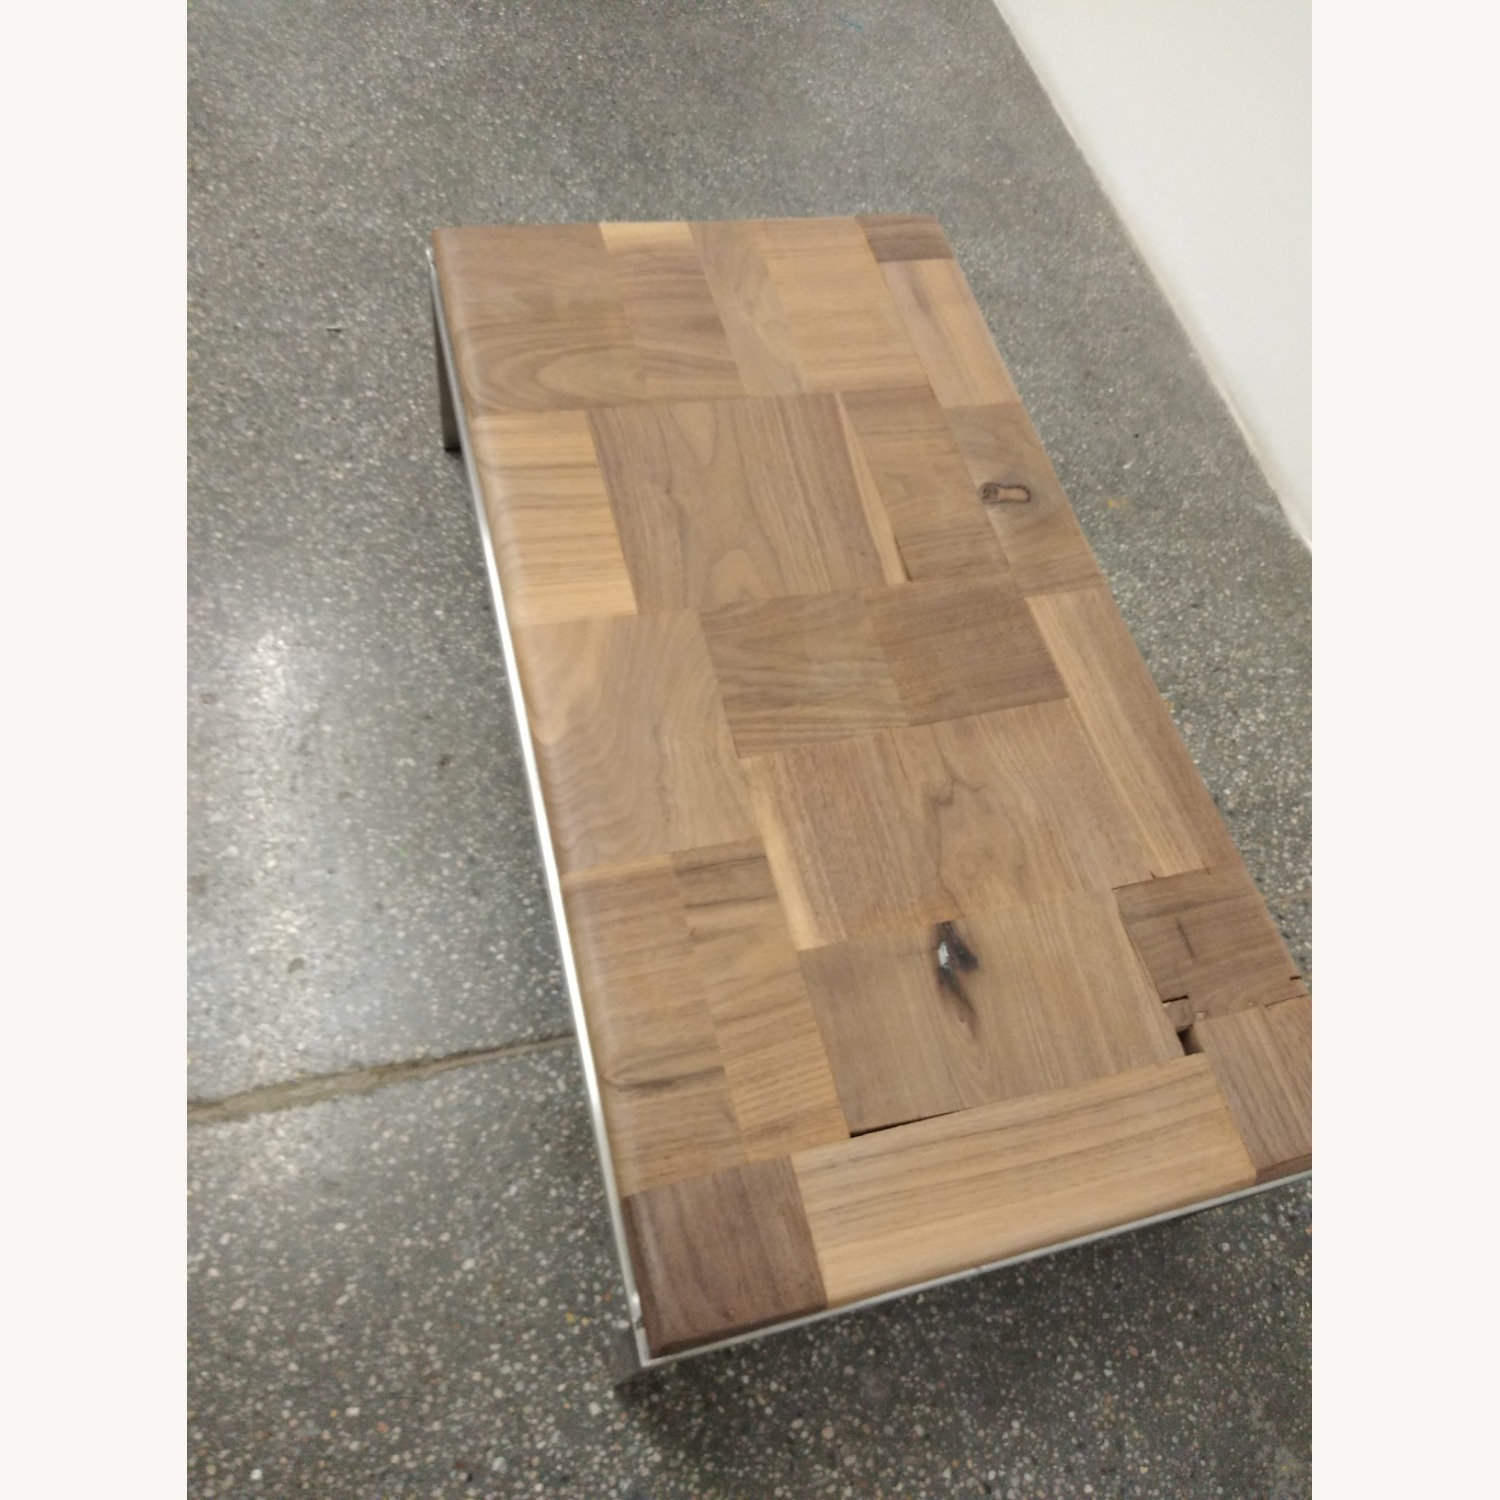 Restoration Hardware Solid Walnut Mosaic Coffee Table - image-7